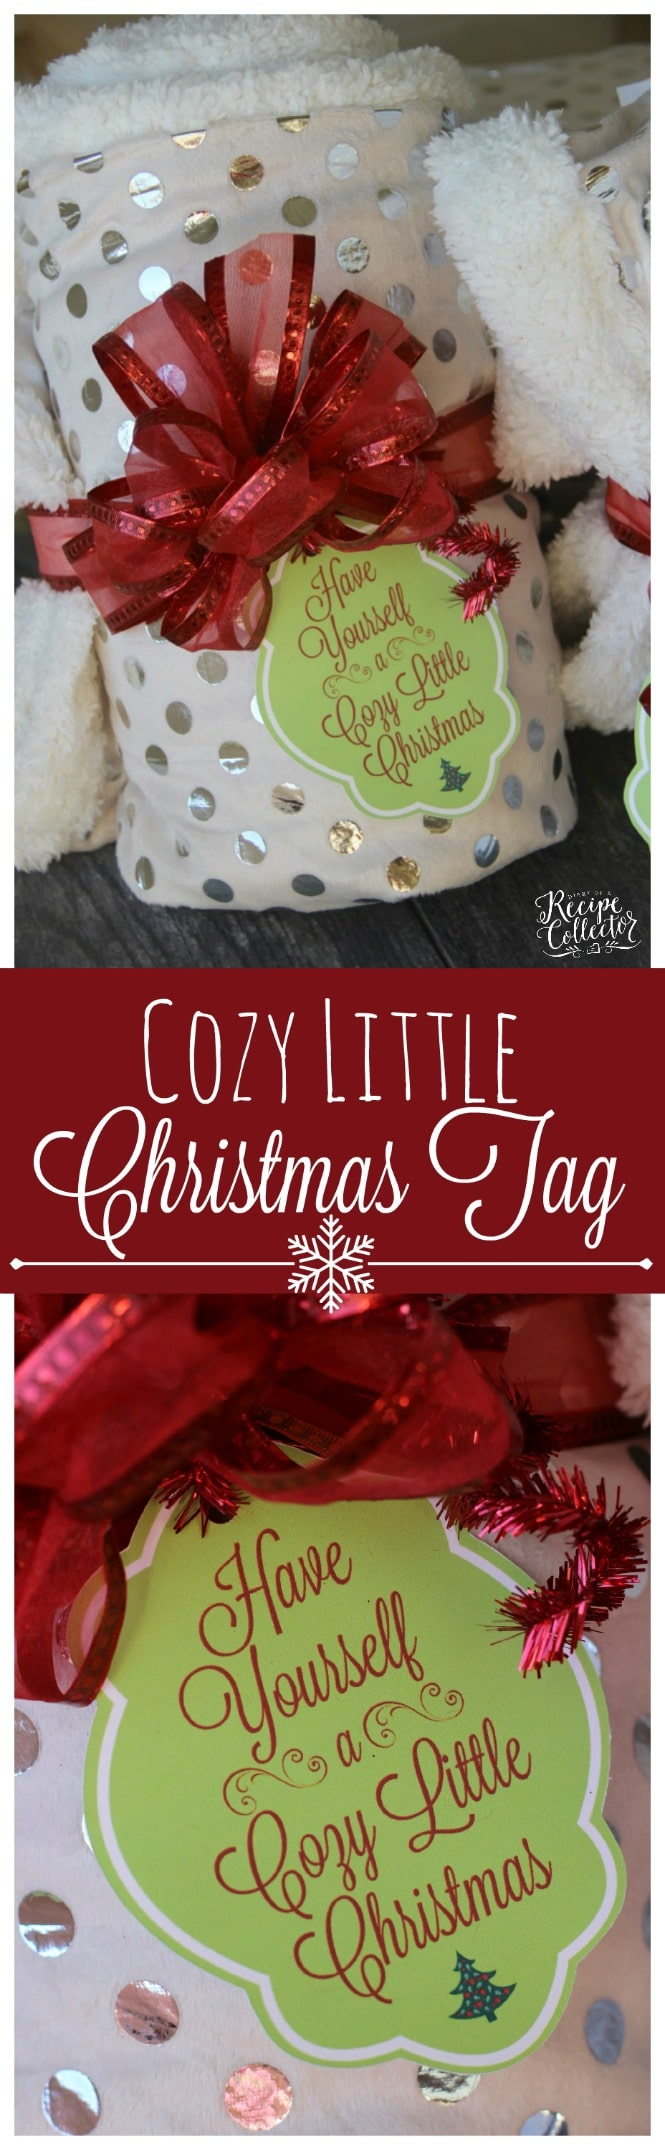 Little Christmas Gift Ideas.Cozy Little Christmas Tag Gift Idea Diary Of A Recipe